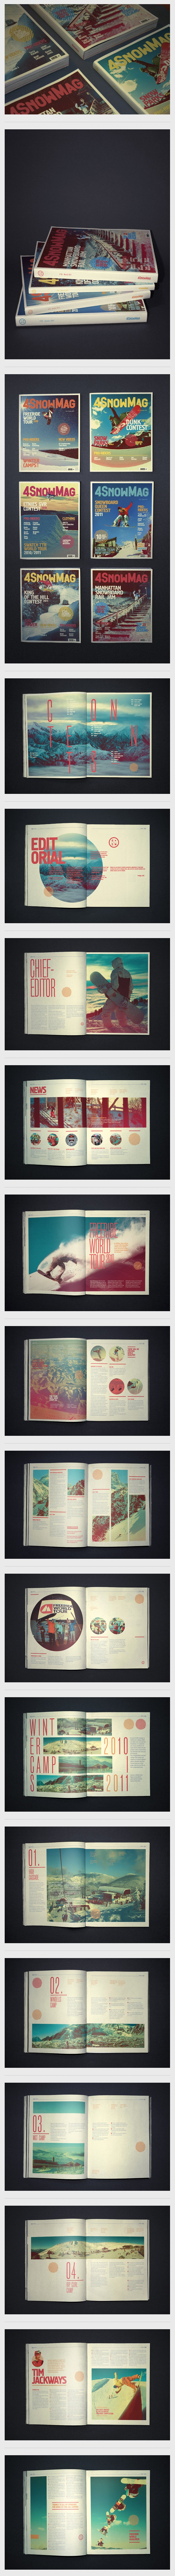 4SnowMag on Behance #layout #design #editorial